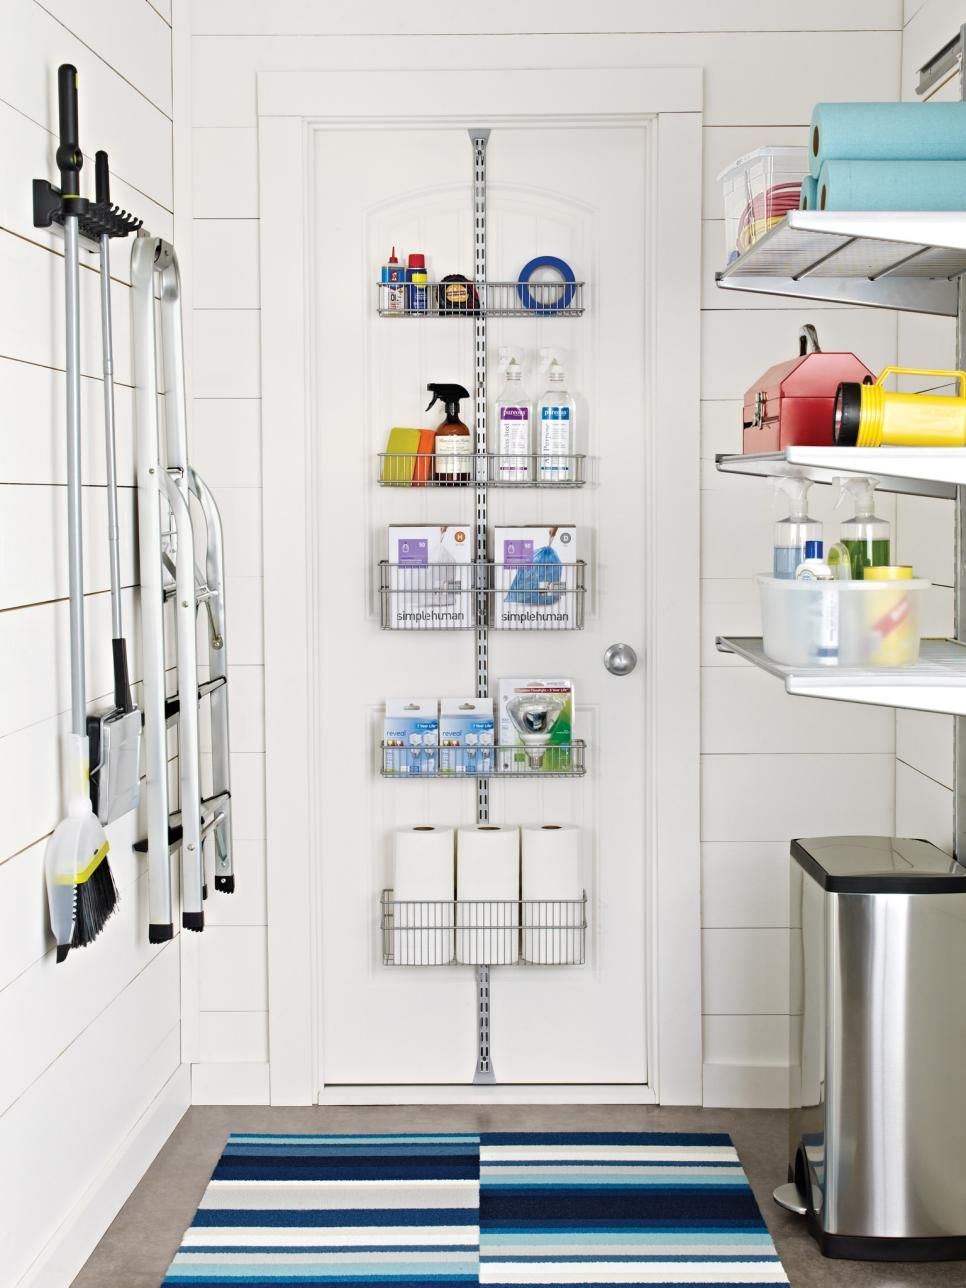 25 Beautifully Organized And Functional Spaces Easy Ideas For Organizing And Cleaning Your Home Hgtv Waschkuche Aufraumen Waschkuchendesign Speicherideen